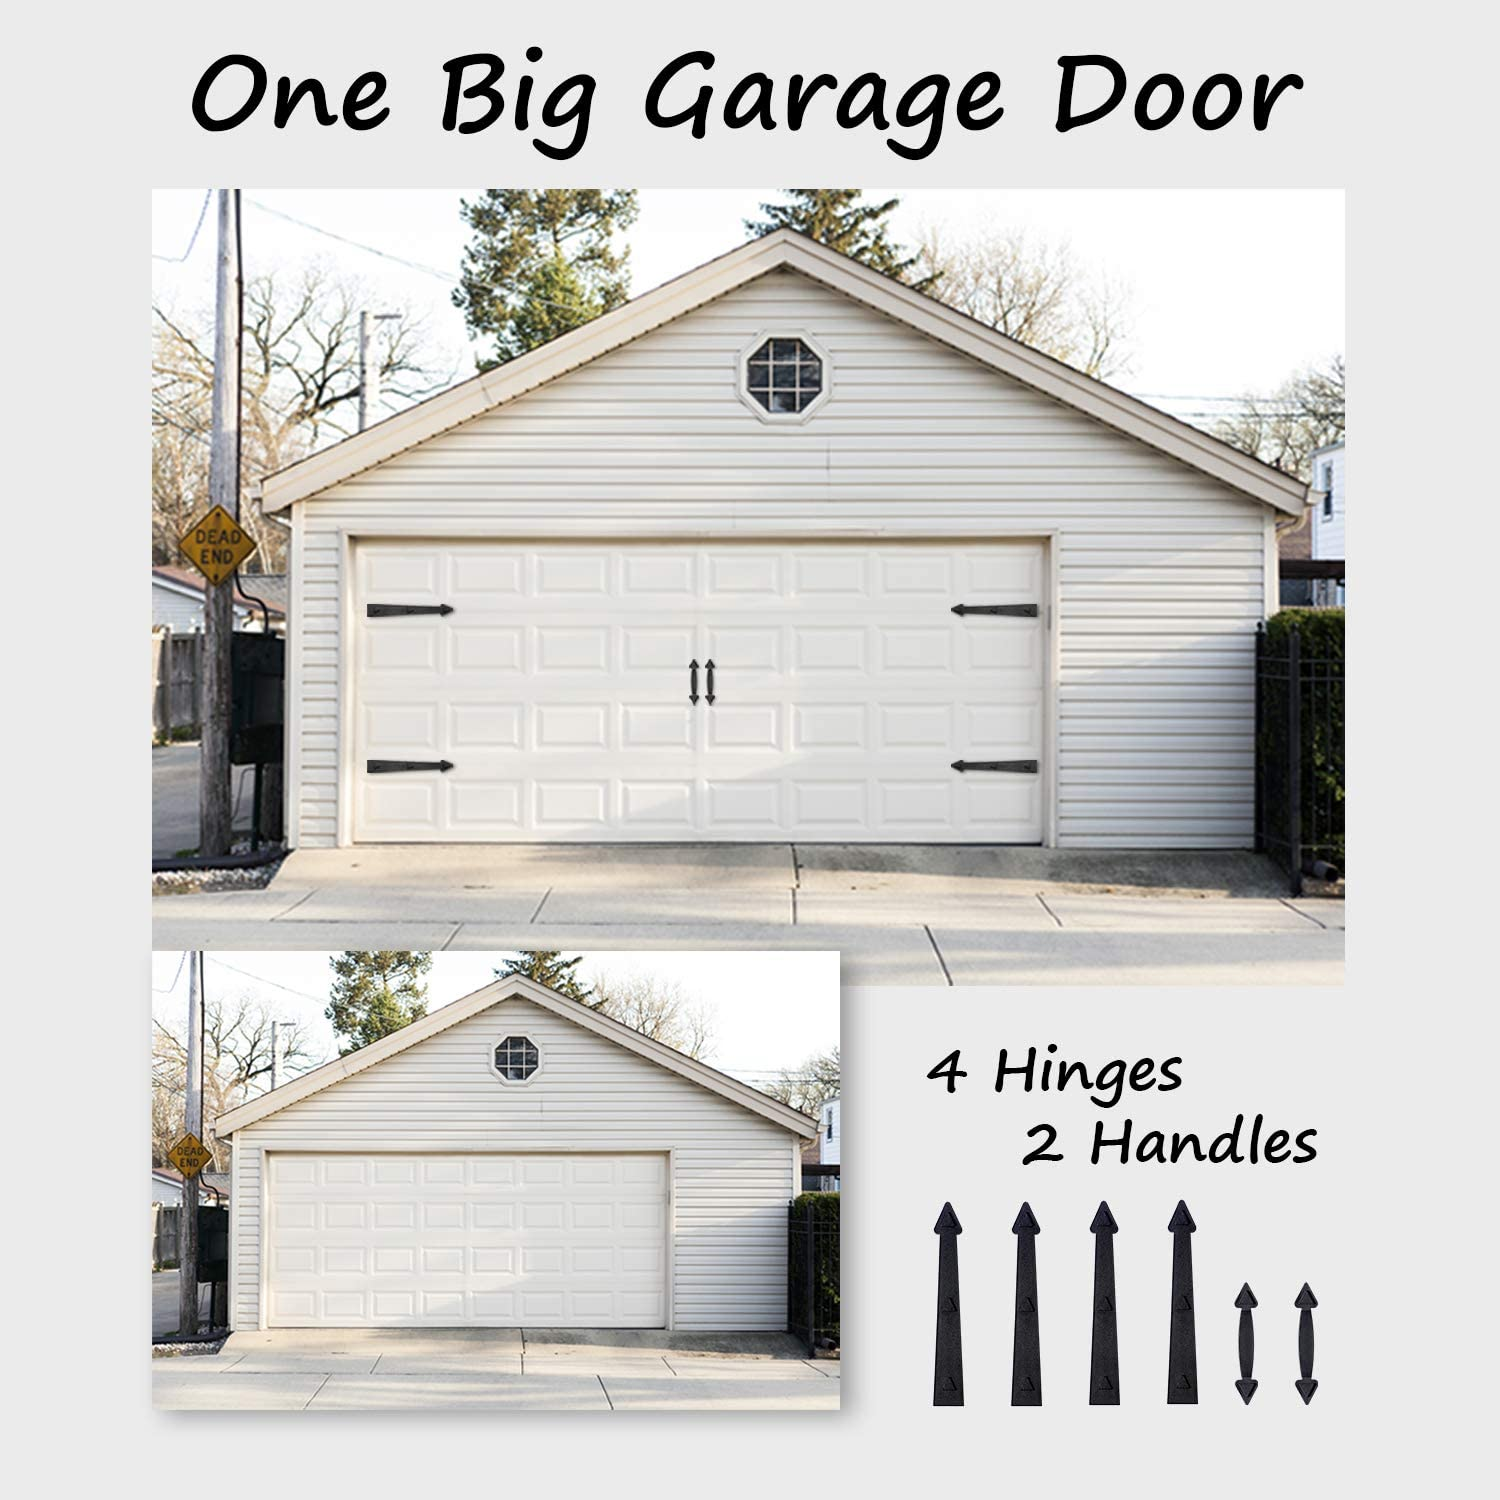 Strong Magnets Color Black 6 Pieces Carriage Accents Faux Hinges SANKEYTEW Garage Door Magnetic Decorative Hardware Kit